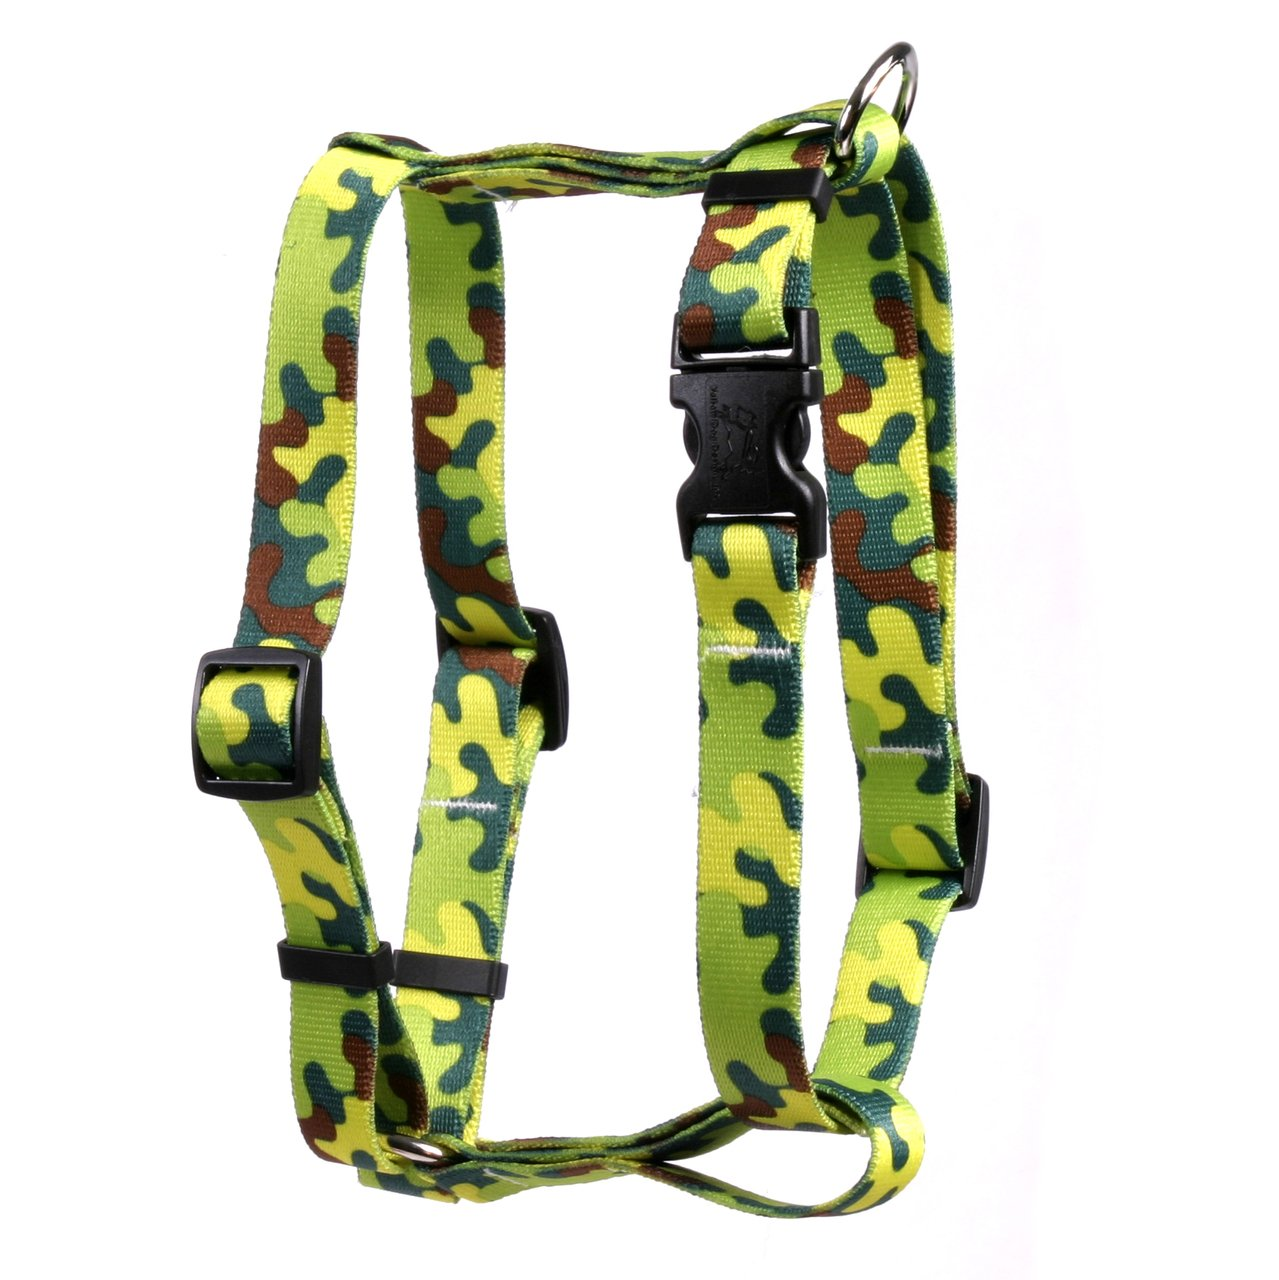 Yellow Dog Design Neon Camo Roman Style H Dog Harness, X-Large-1'' Wide and fits Chest of 28 to 36''